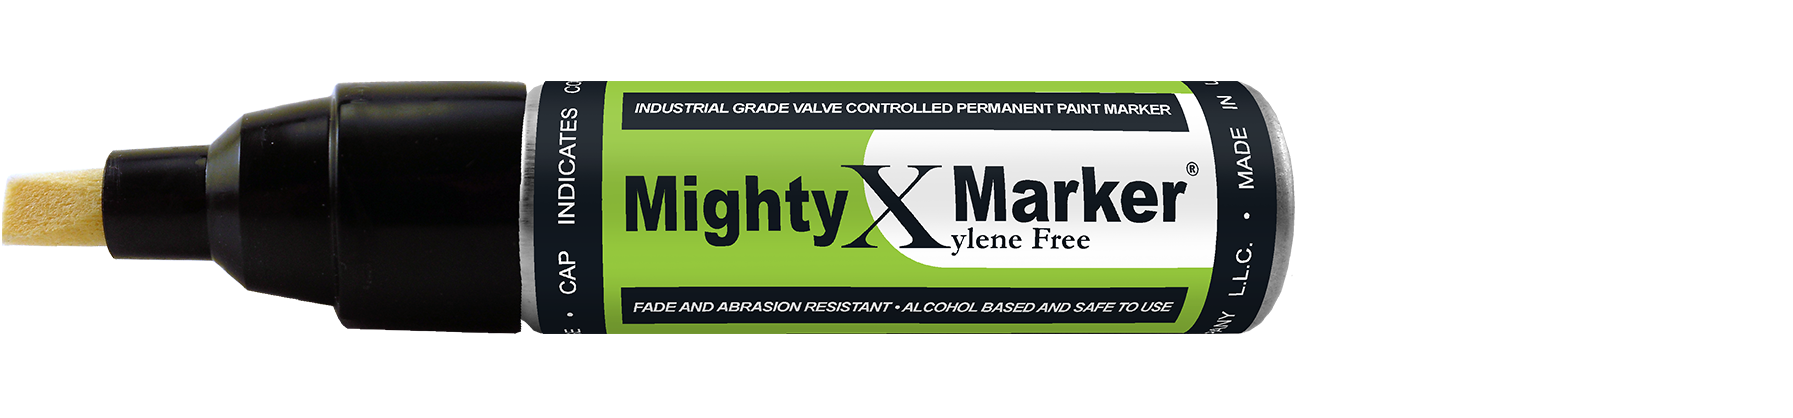 Mighty X Marker Xylene Free Paint Marker